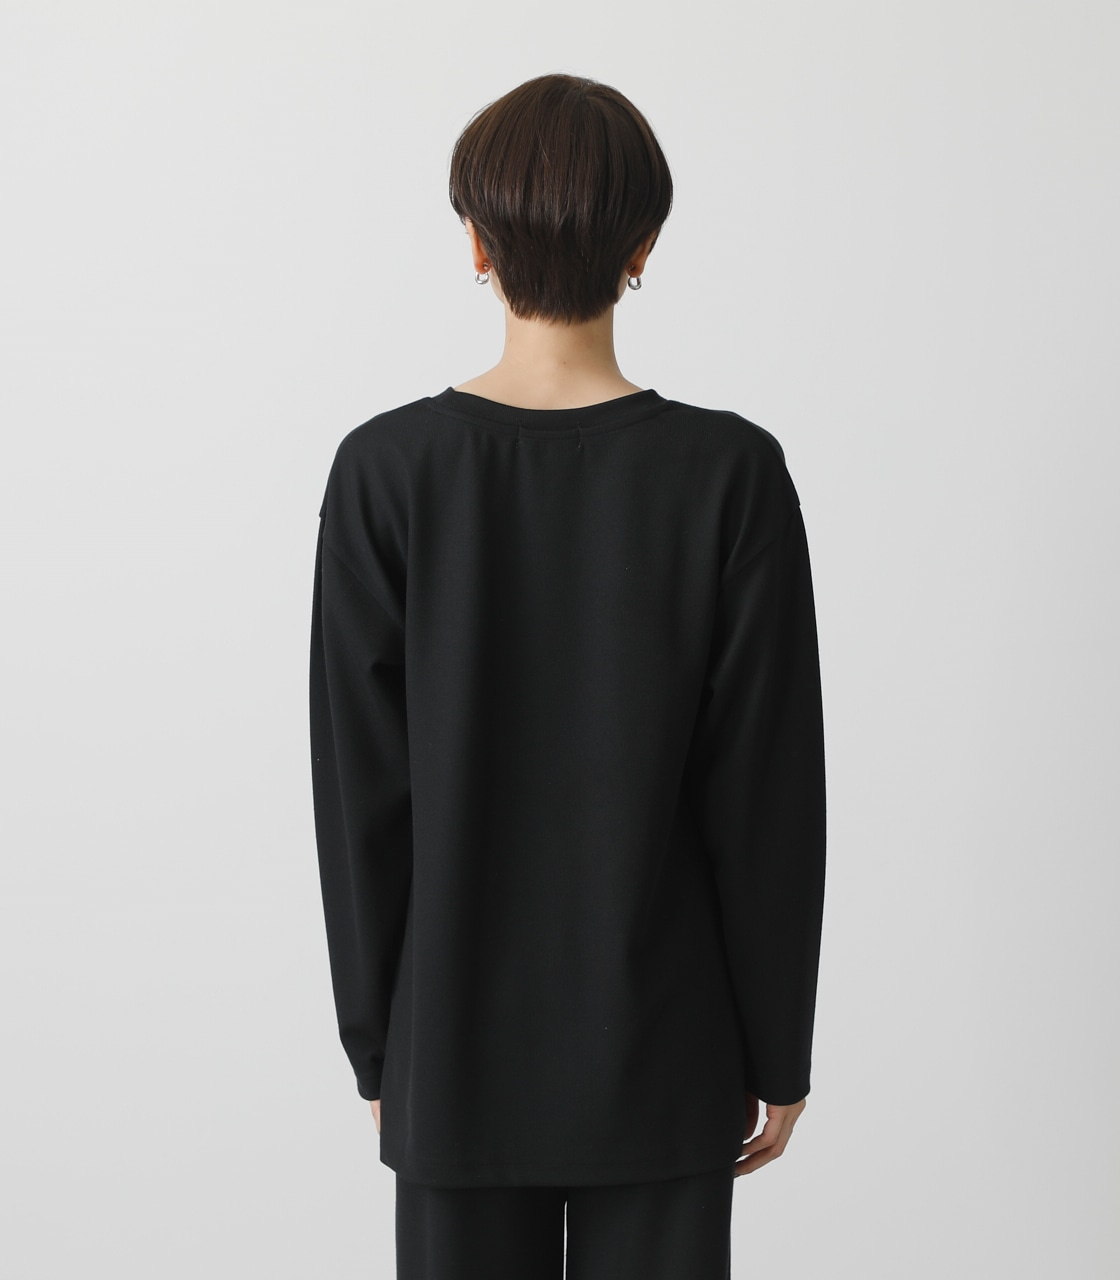 T/H PRINT LONG TEE/T/HプリントロングTシャツ 詳細画像 BLK 7